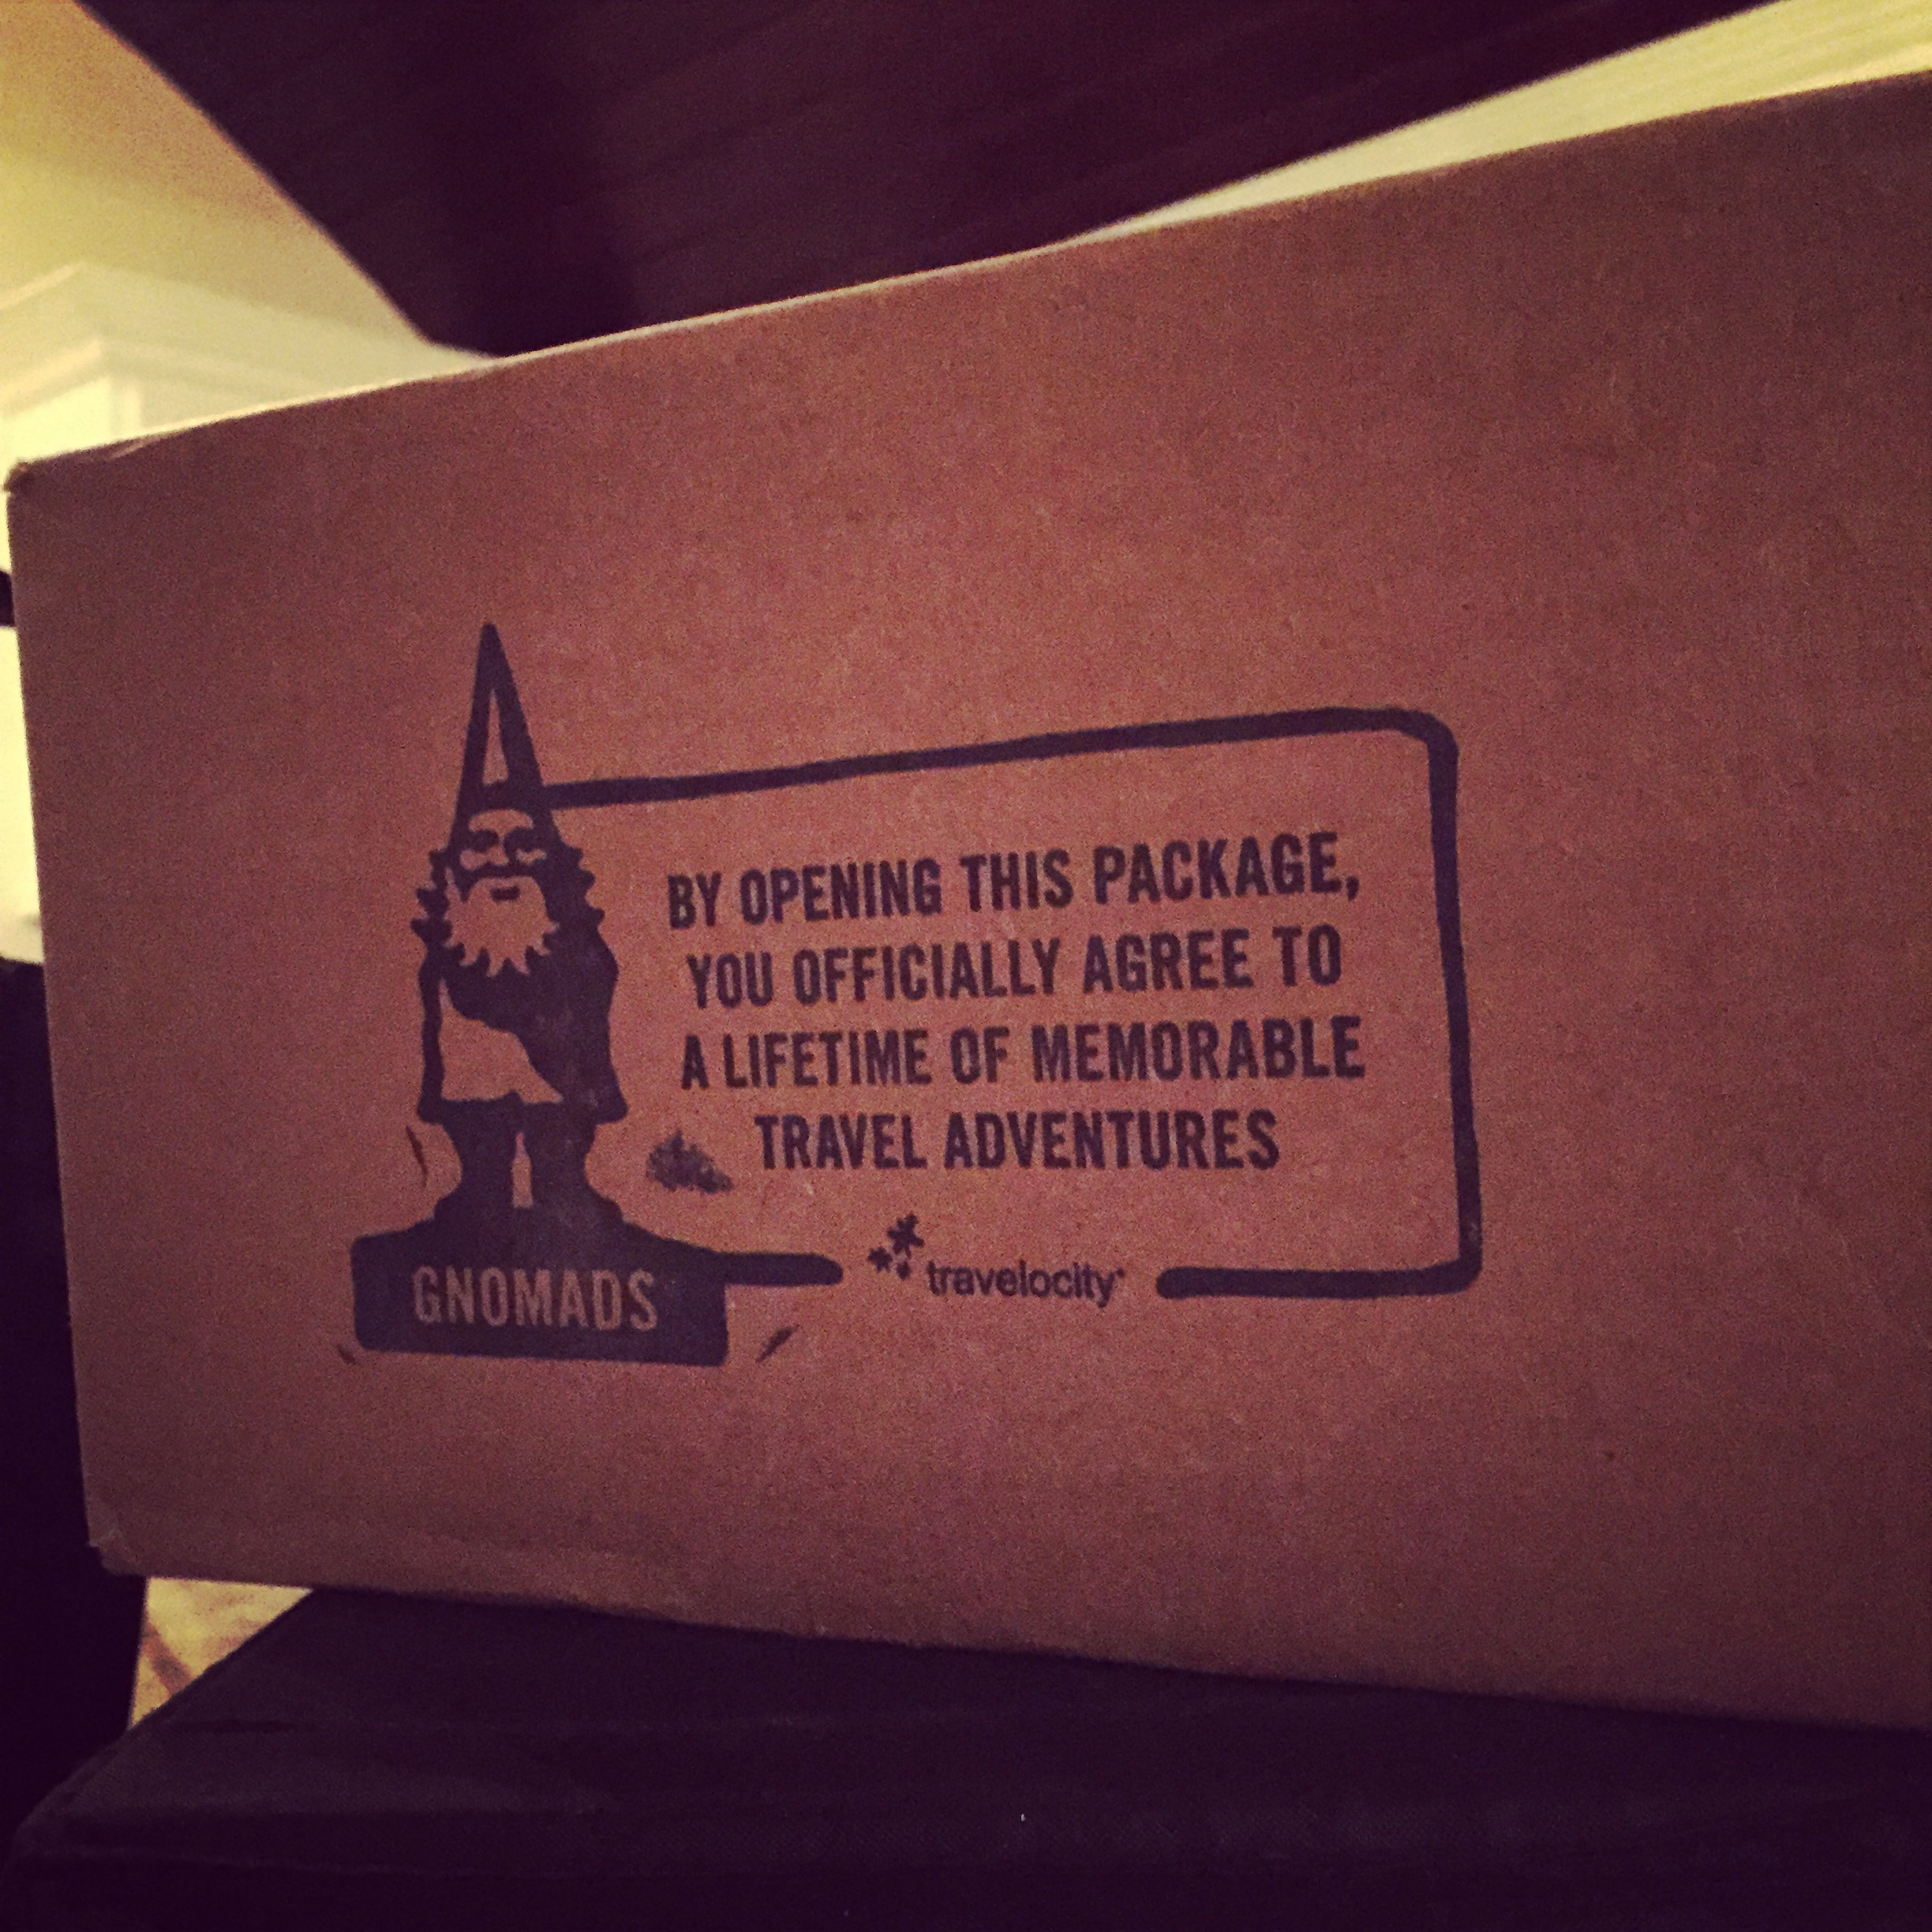 Our Travelocity Roaming Gnome arrived on our doorstep two years ago on Valentine's Day and we were thrilled to adopt him!